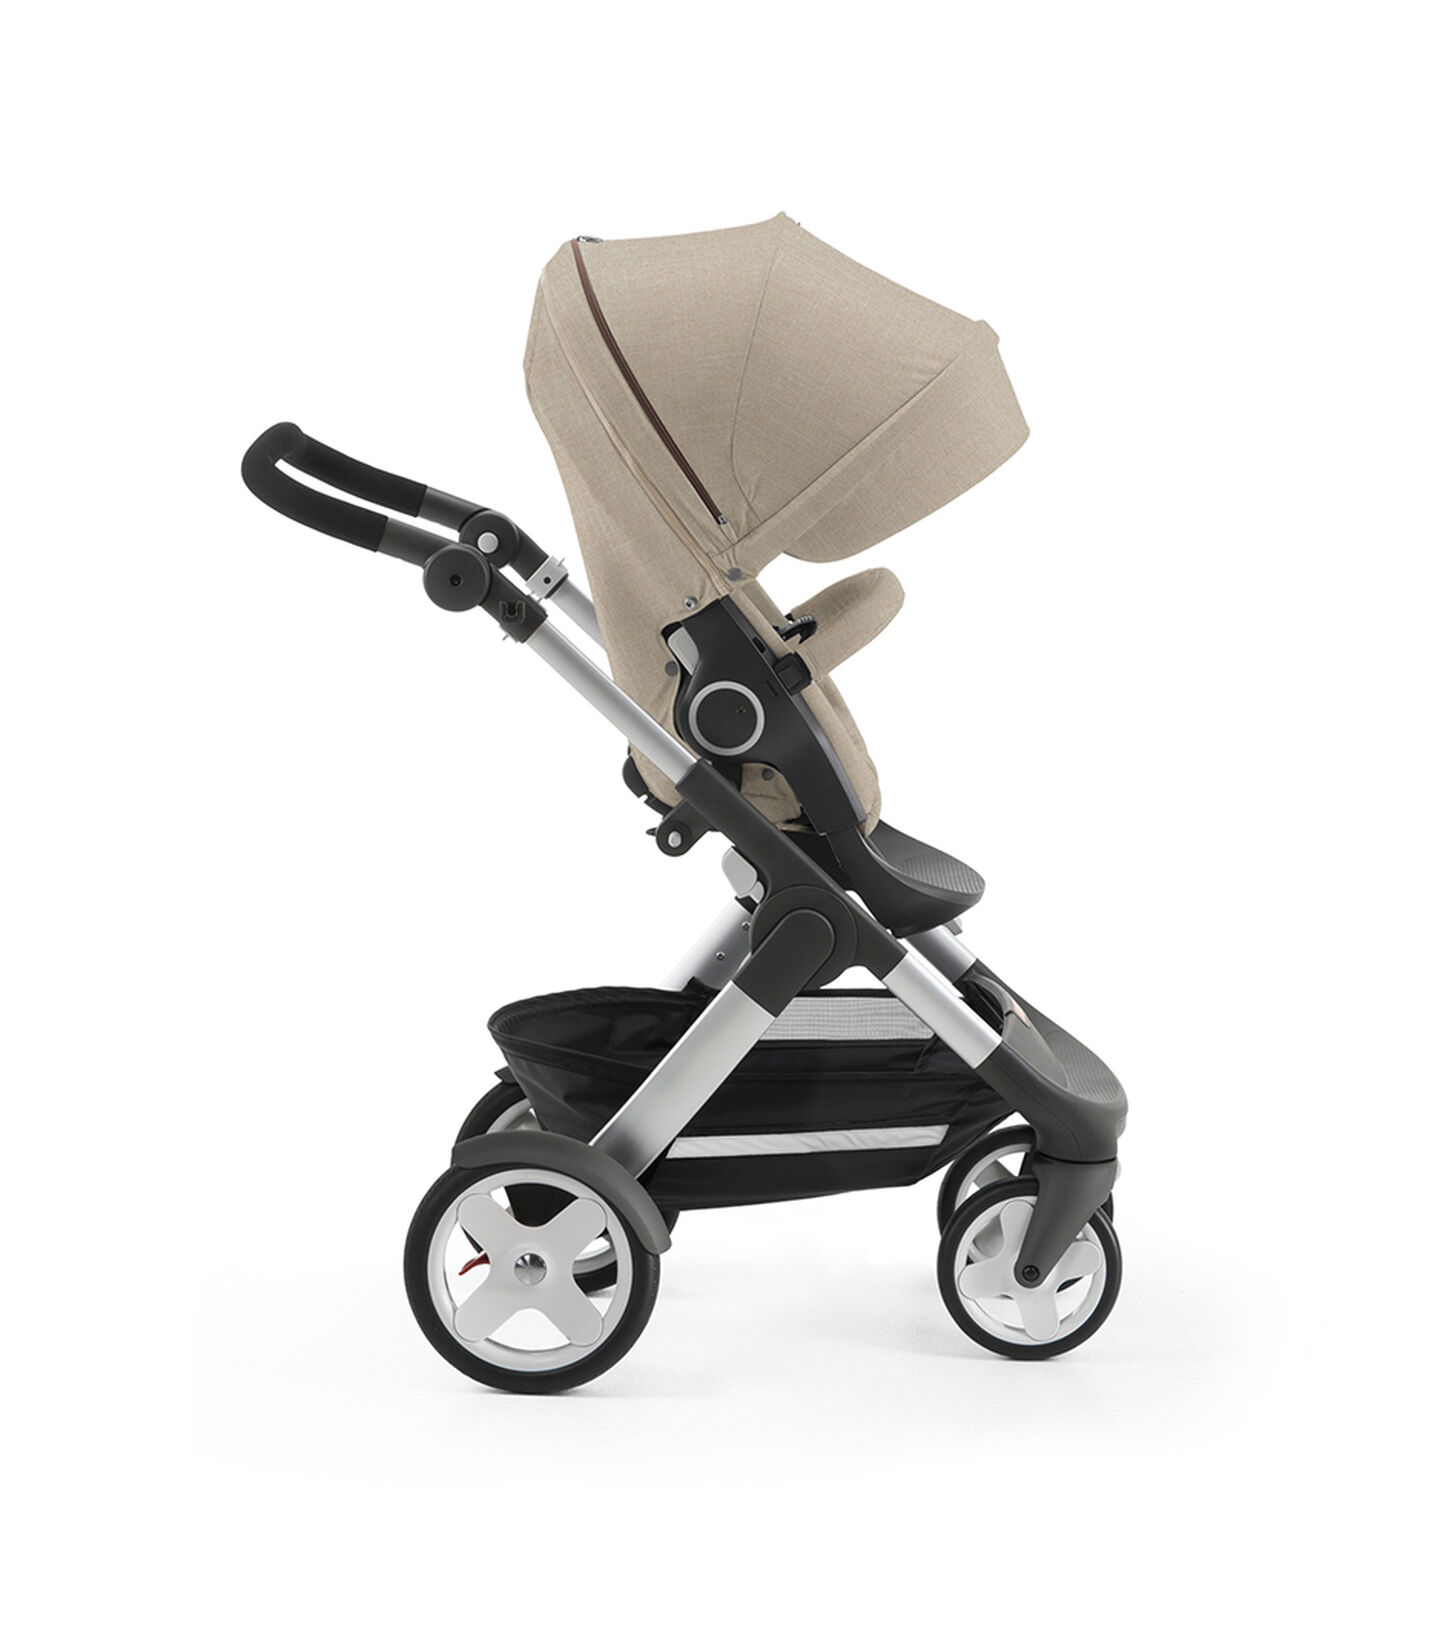 Stokke® Trailz with Stokke® Stroller Seat, forward facing, active position. Beige Melange.